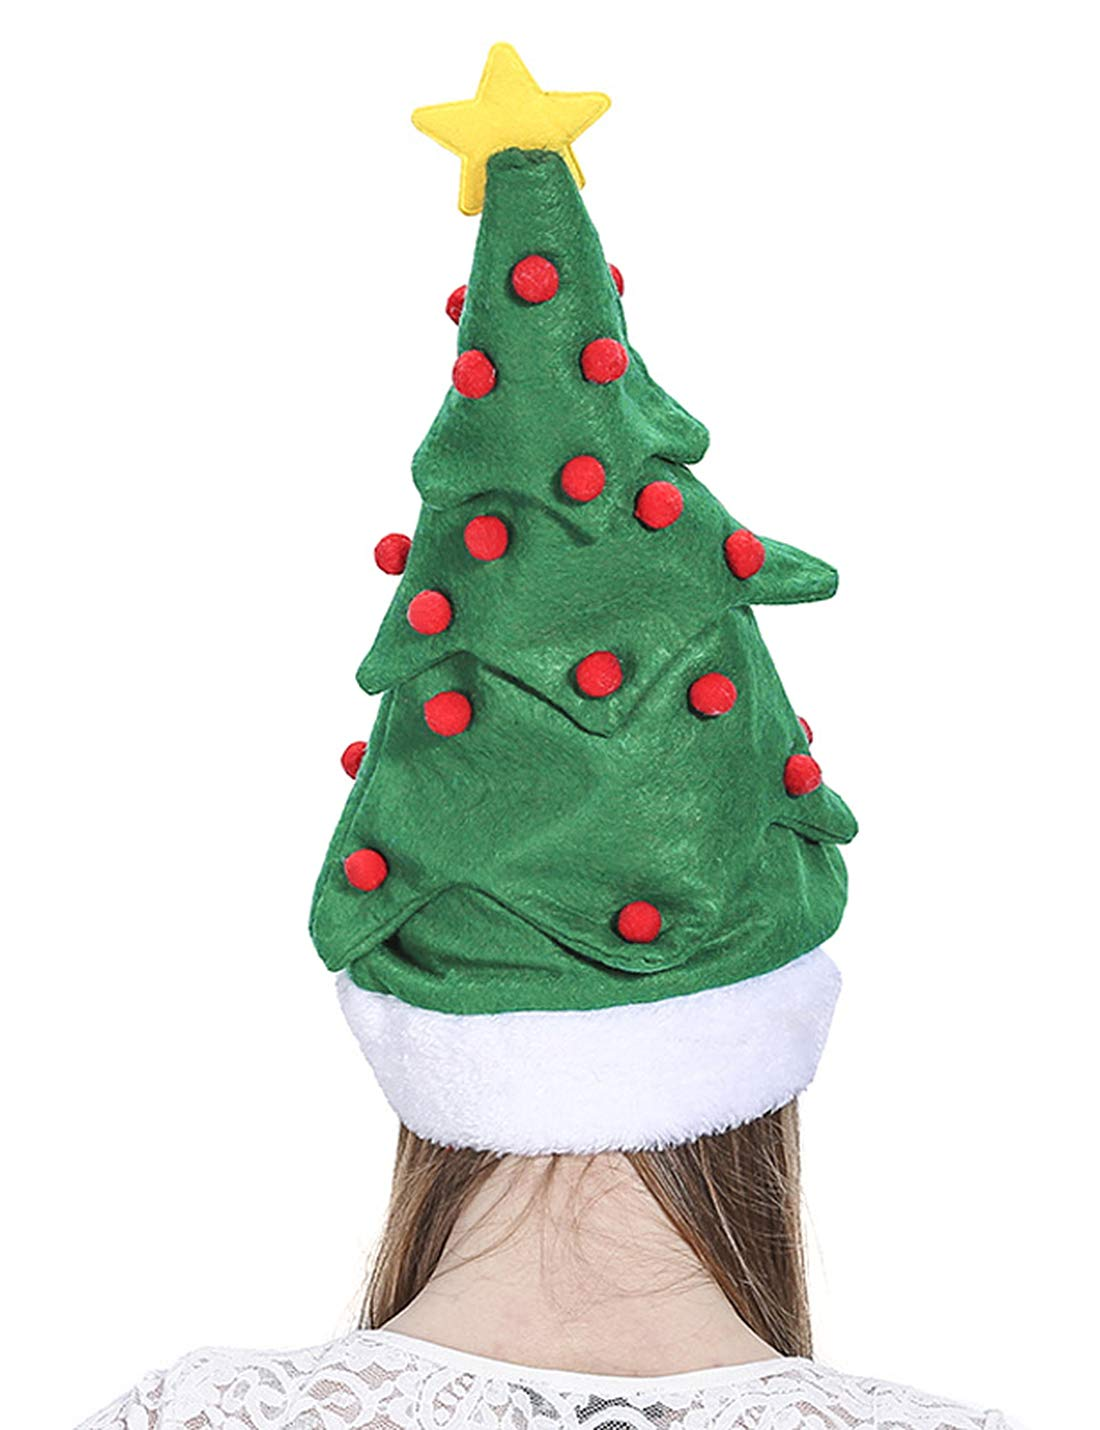 Funny Christmas Hat, 2 Pack Christmas Tree Hat and Plush Santa Claus Hat, Hilarious Santa Hat Red Christmas Cap Costume for Adults Kids Children by DomeXmas